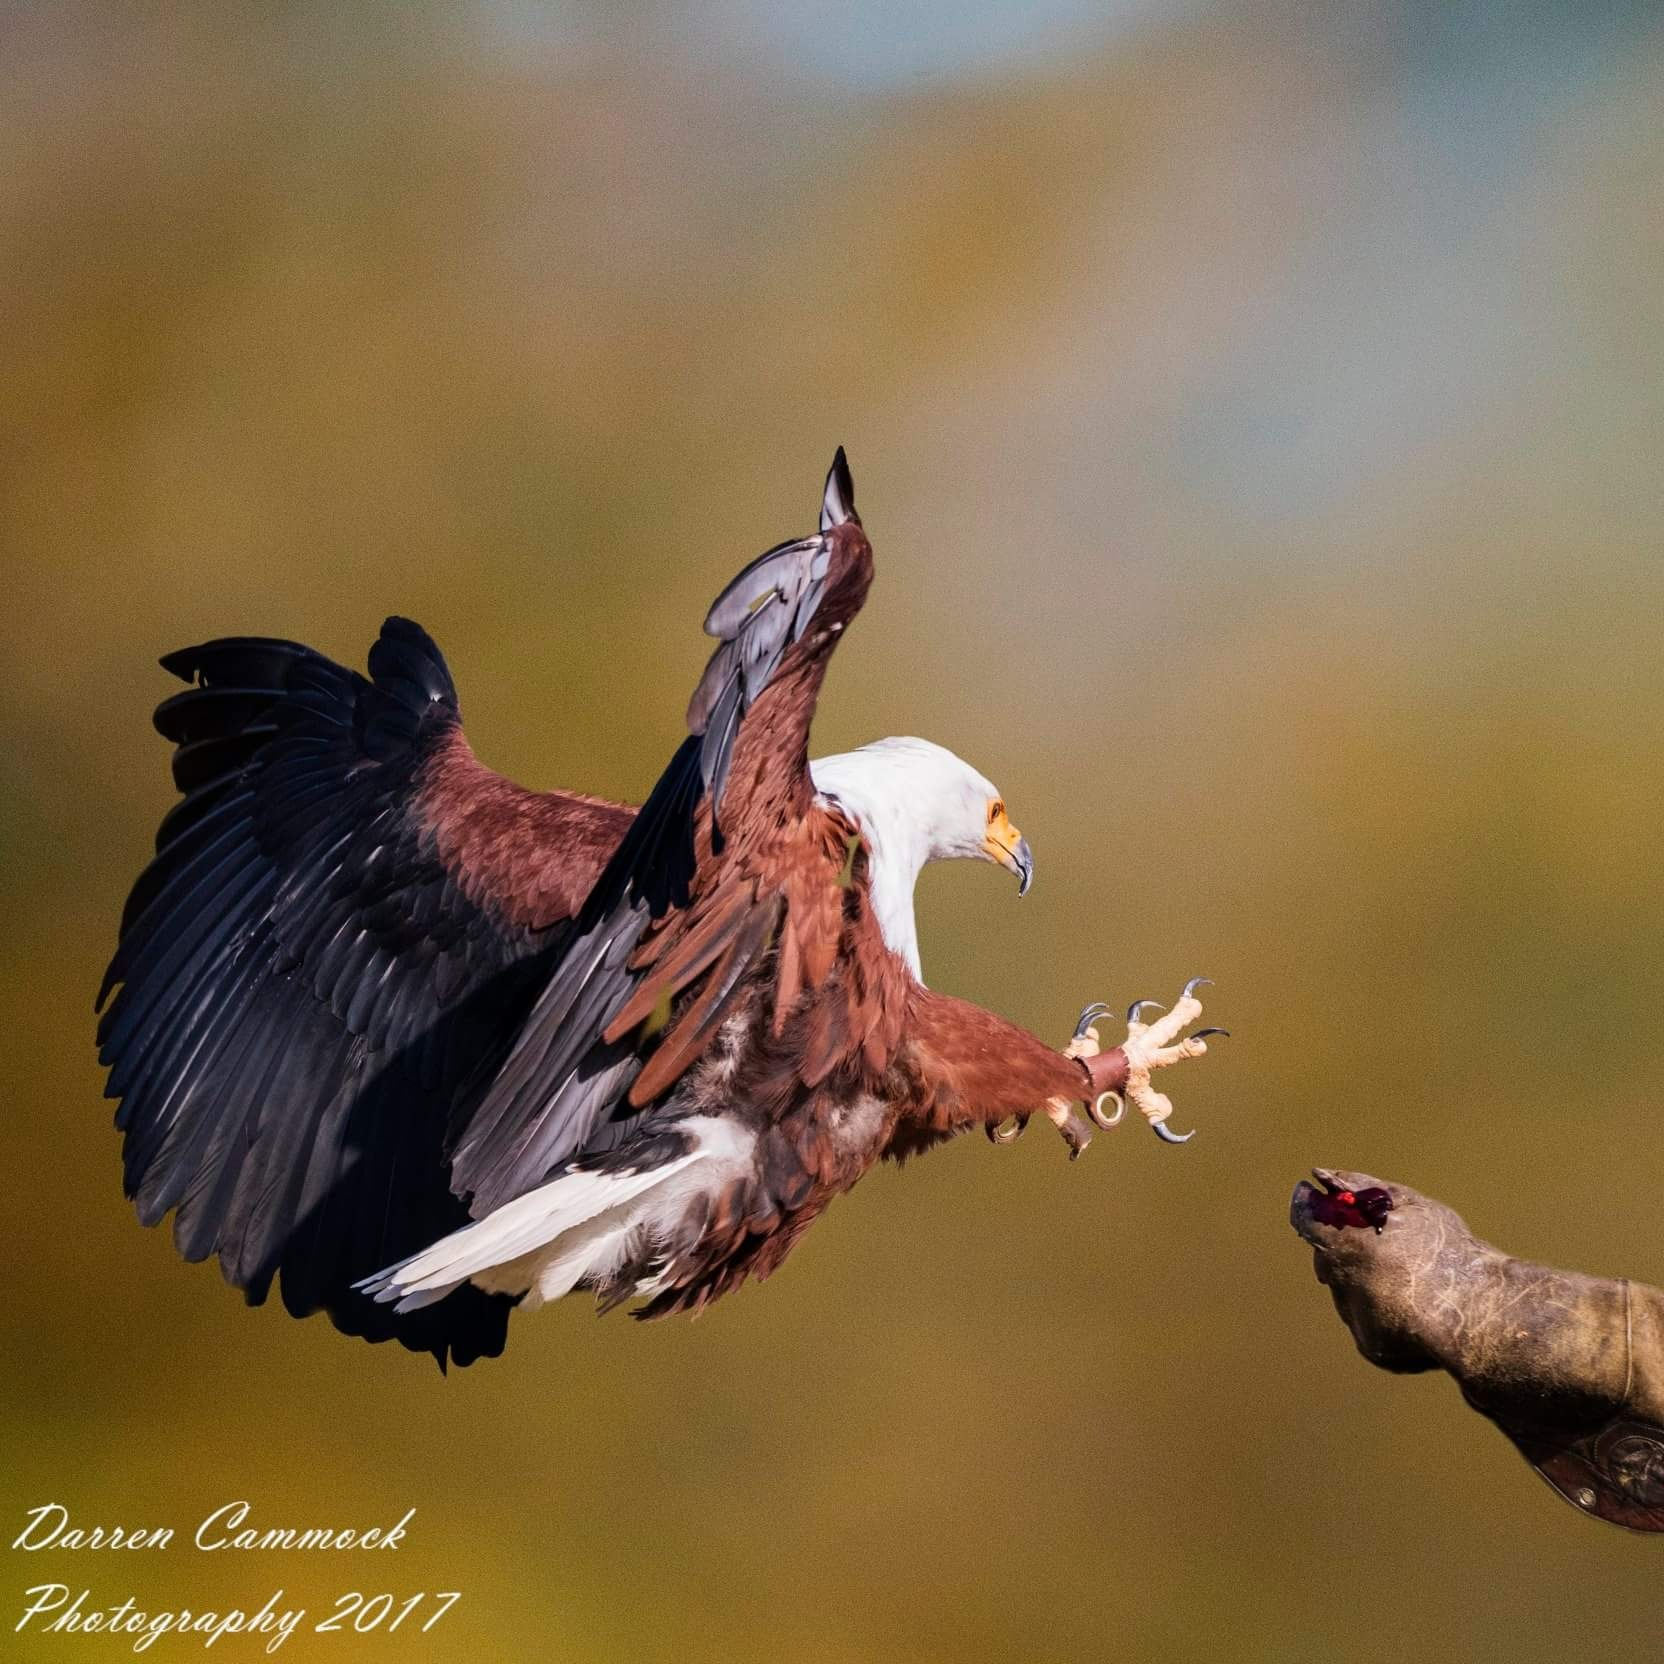 African Fish Eagle by darrencammock